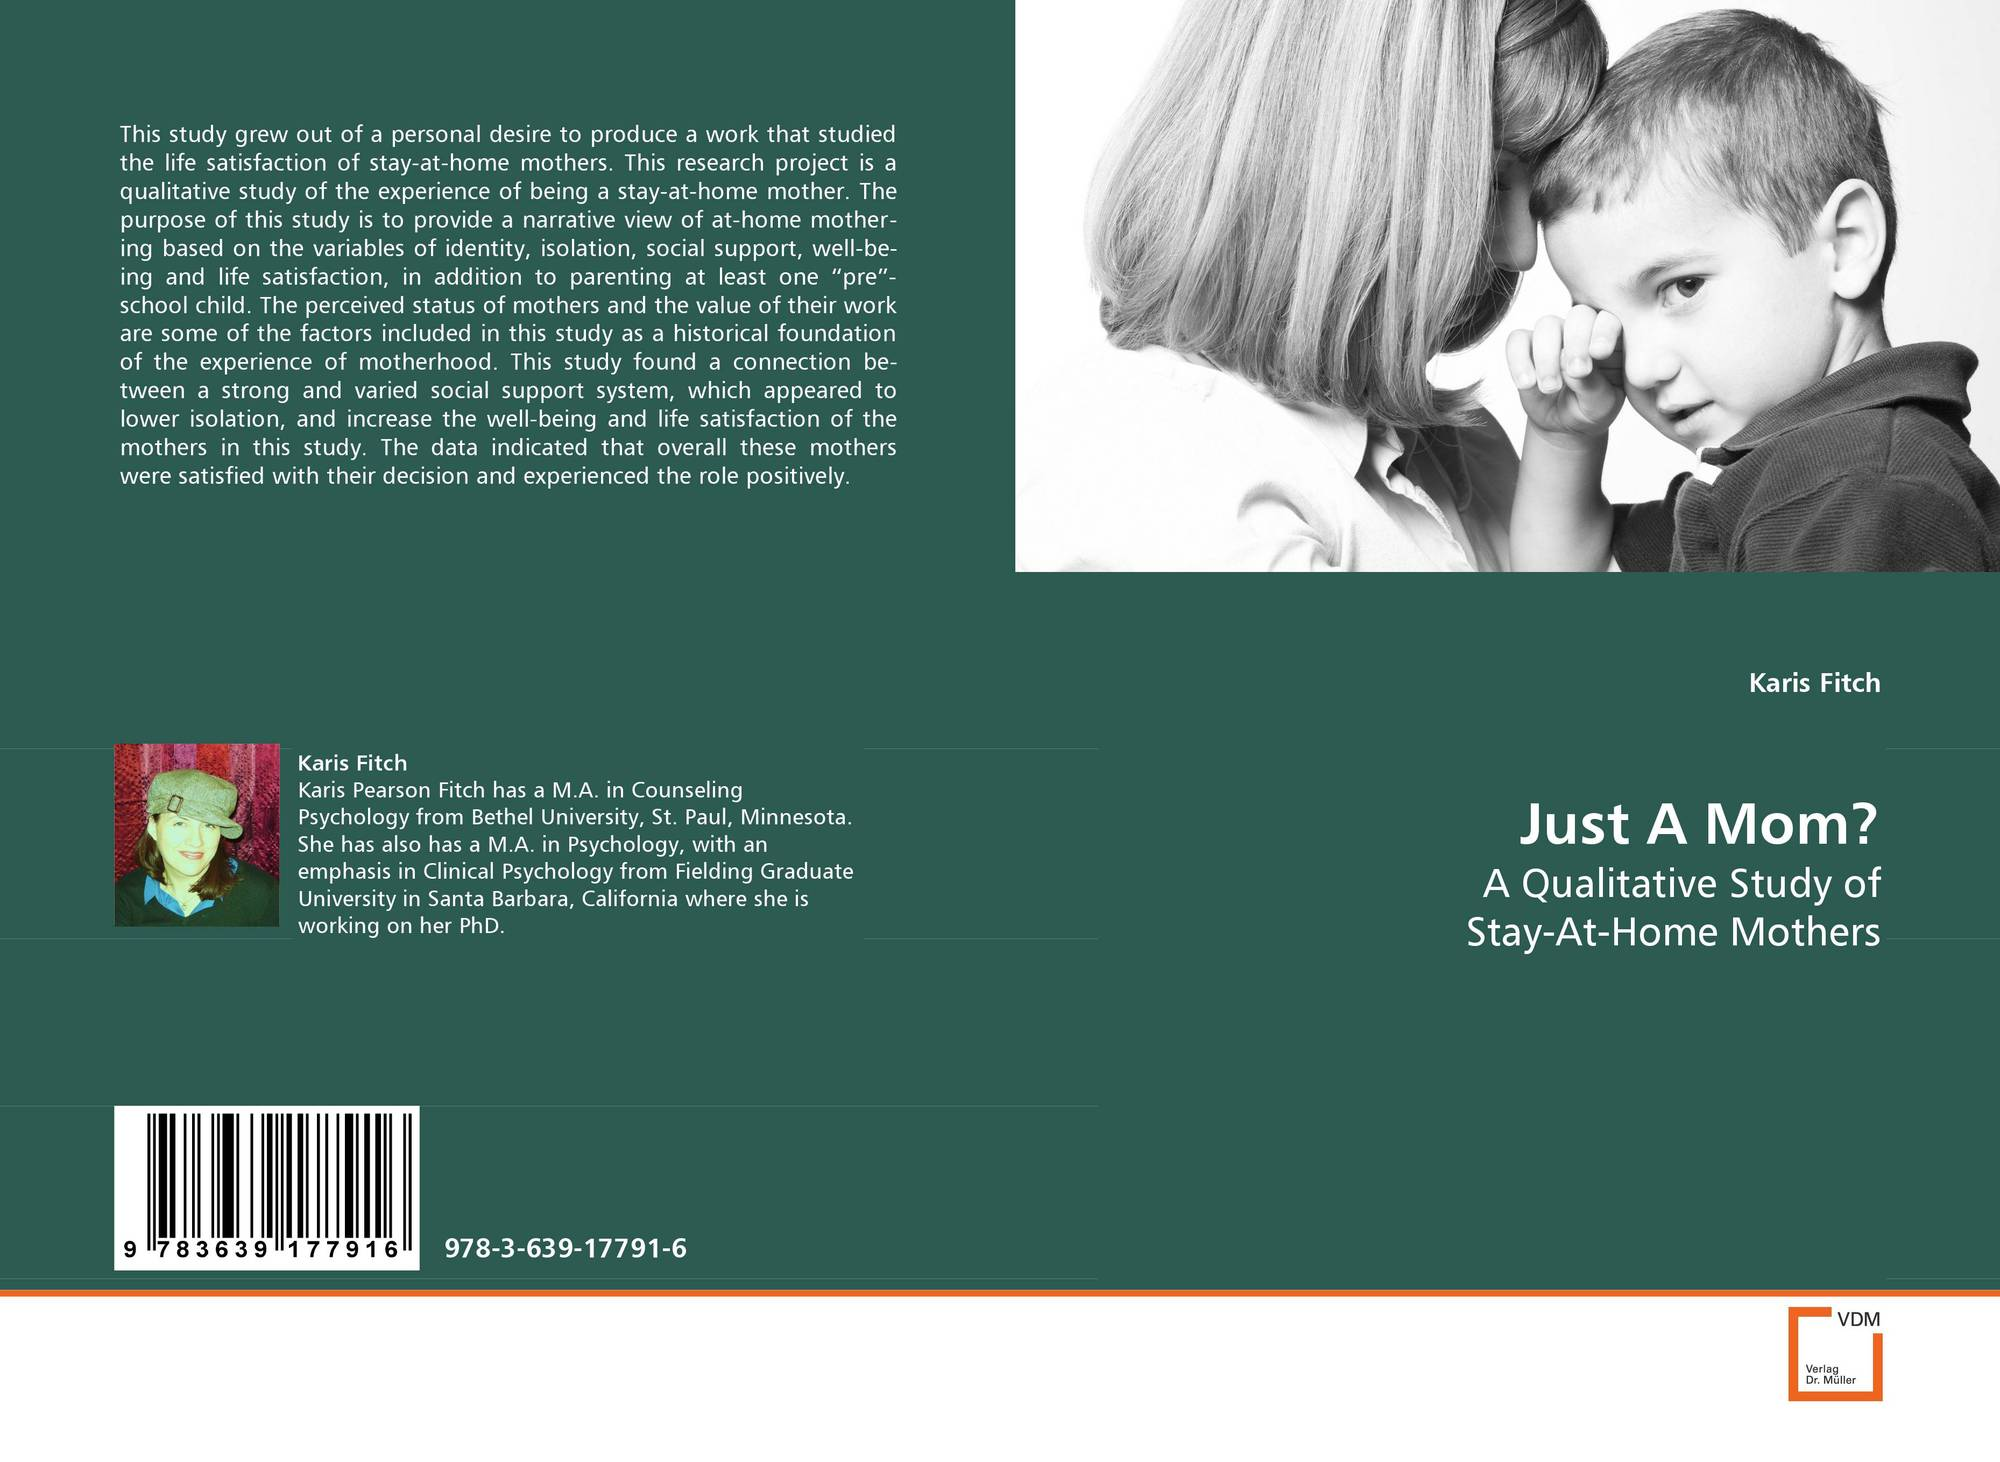 """a metasynthesis of qualitative breastfeeding studies Methods: the metasynthesis included studies of both formal or """"created"""" peer and professional support for breastfeeding women but excluded studies of family or informal support qualitative studies were included as well as large-scale surveys if they reported the analysis of qualitative data gathered through open-ended responses."""